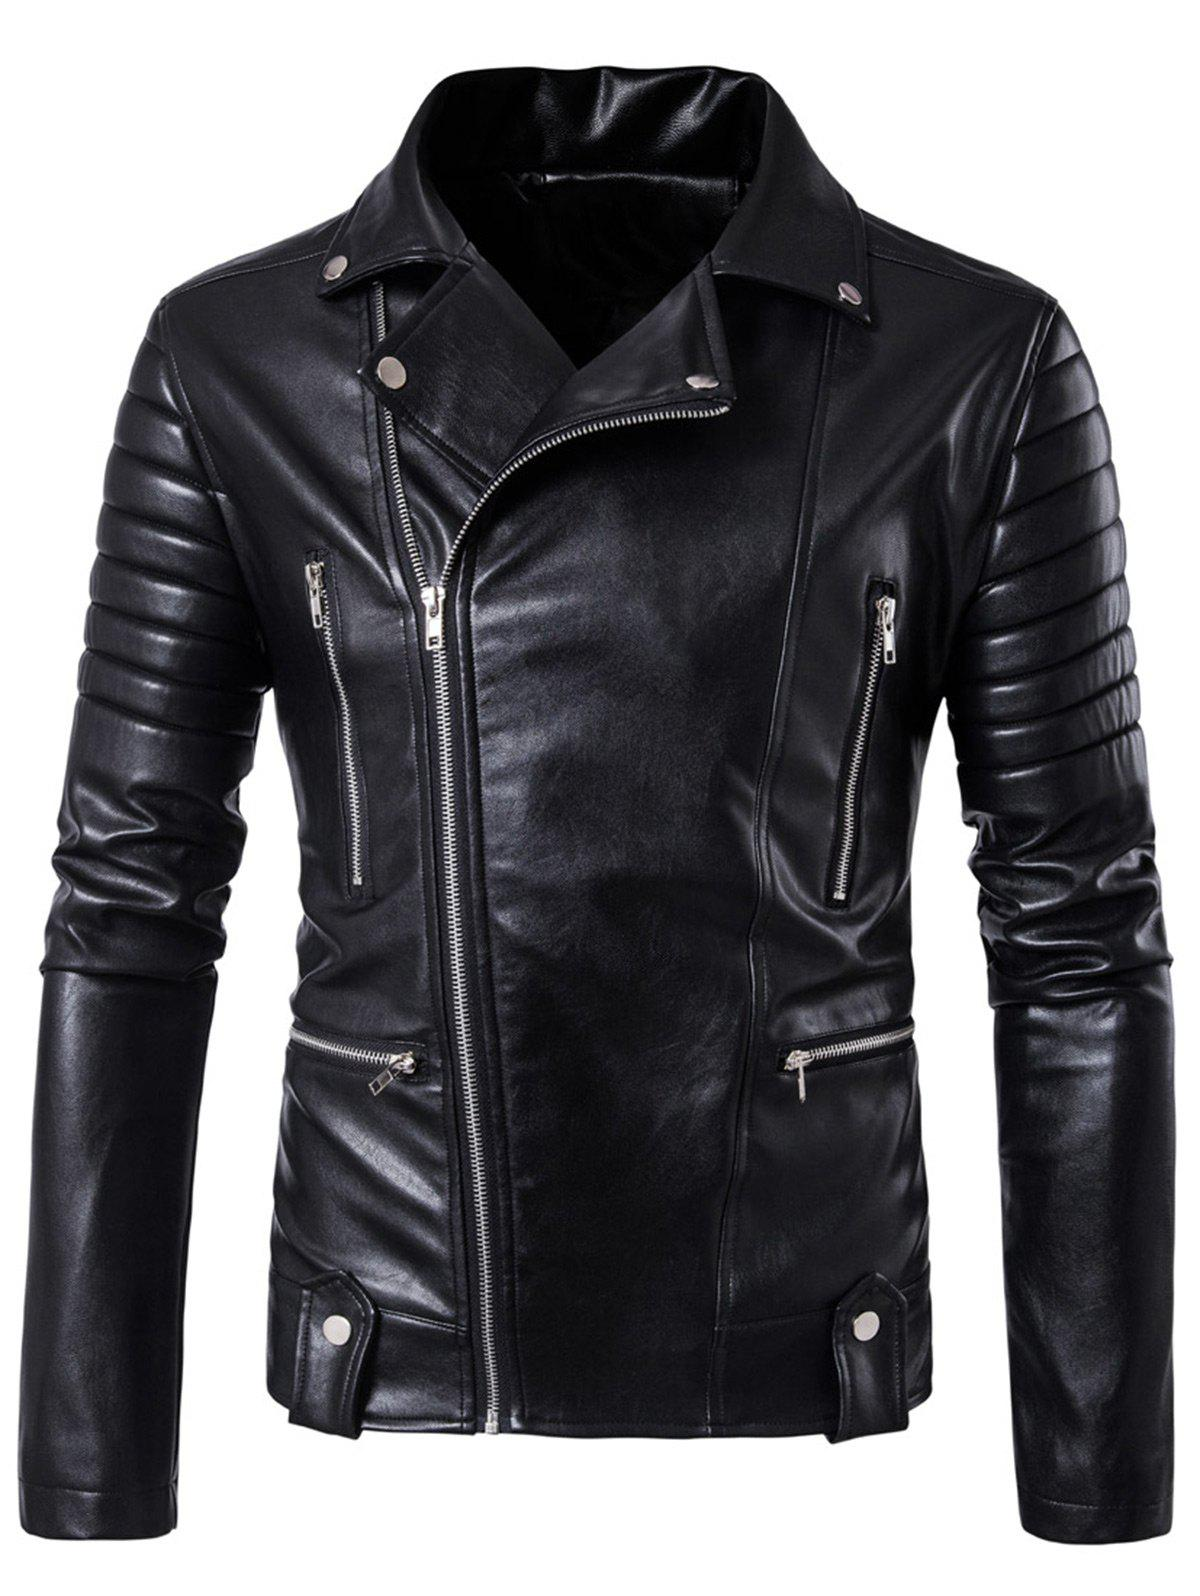 Asymmetrical Zip Up Biker Jacket with Pockets